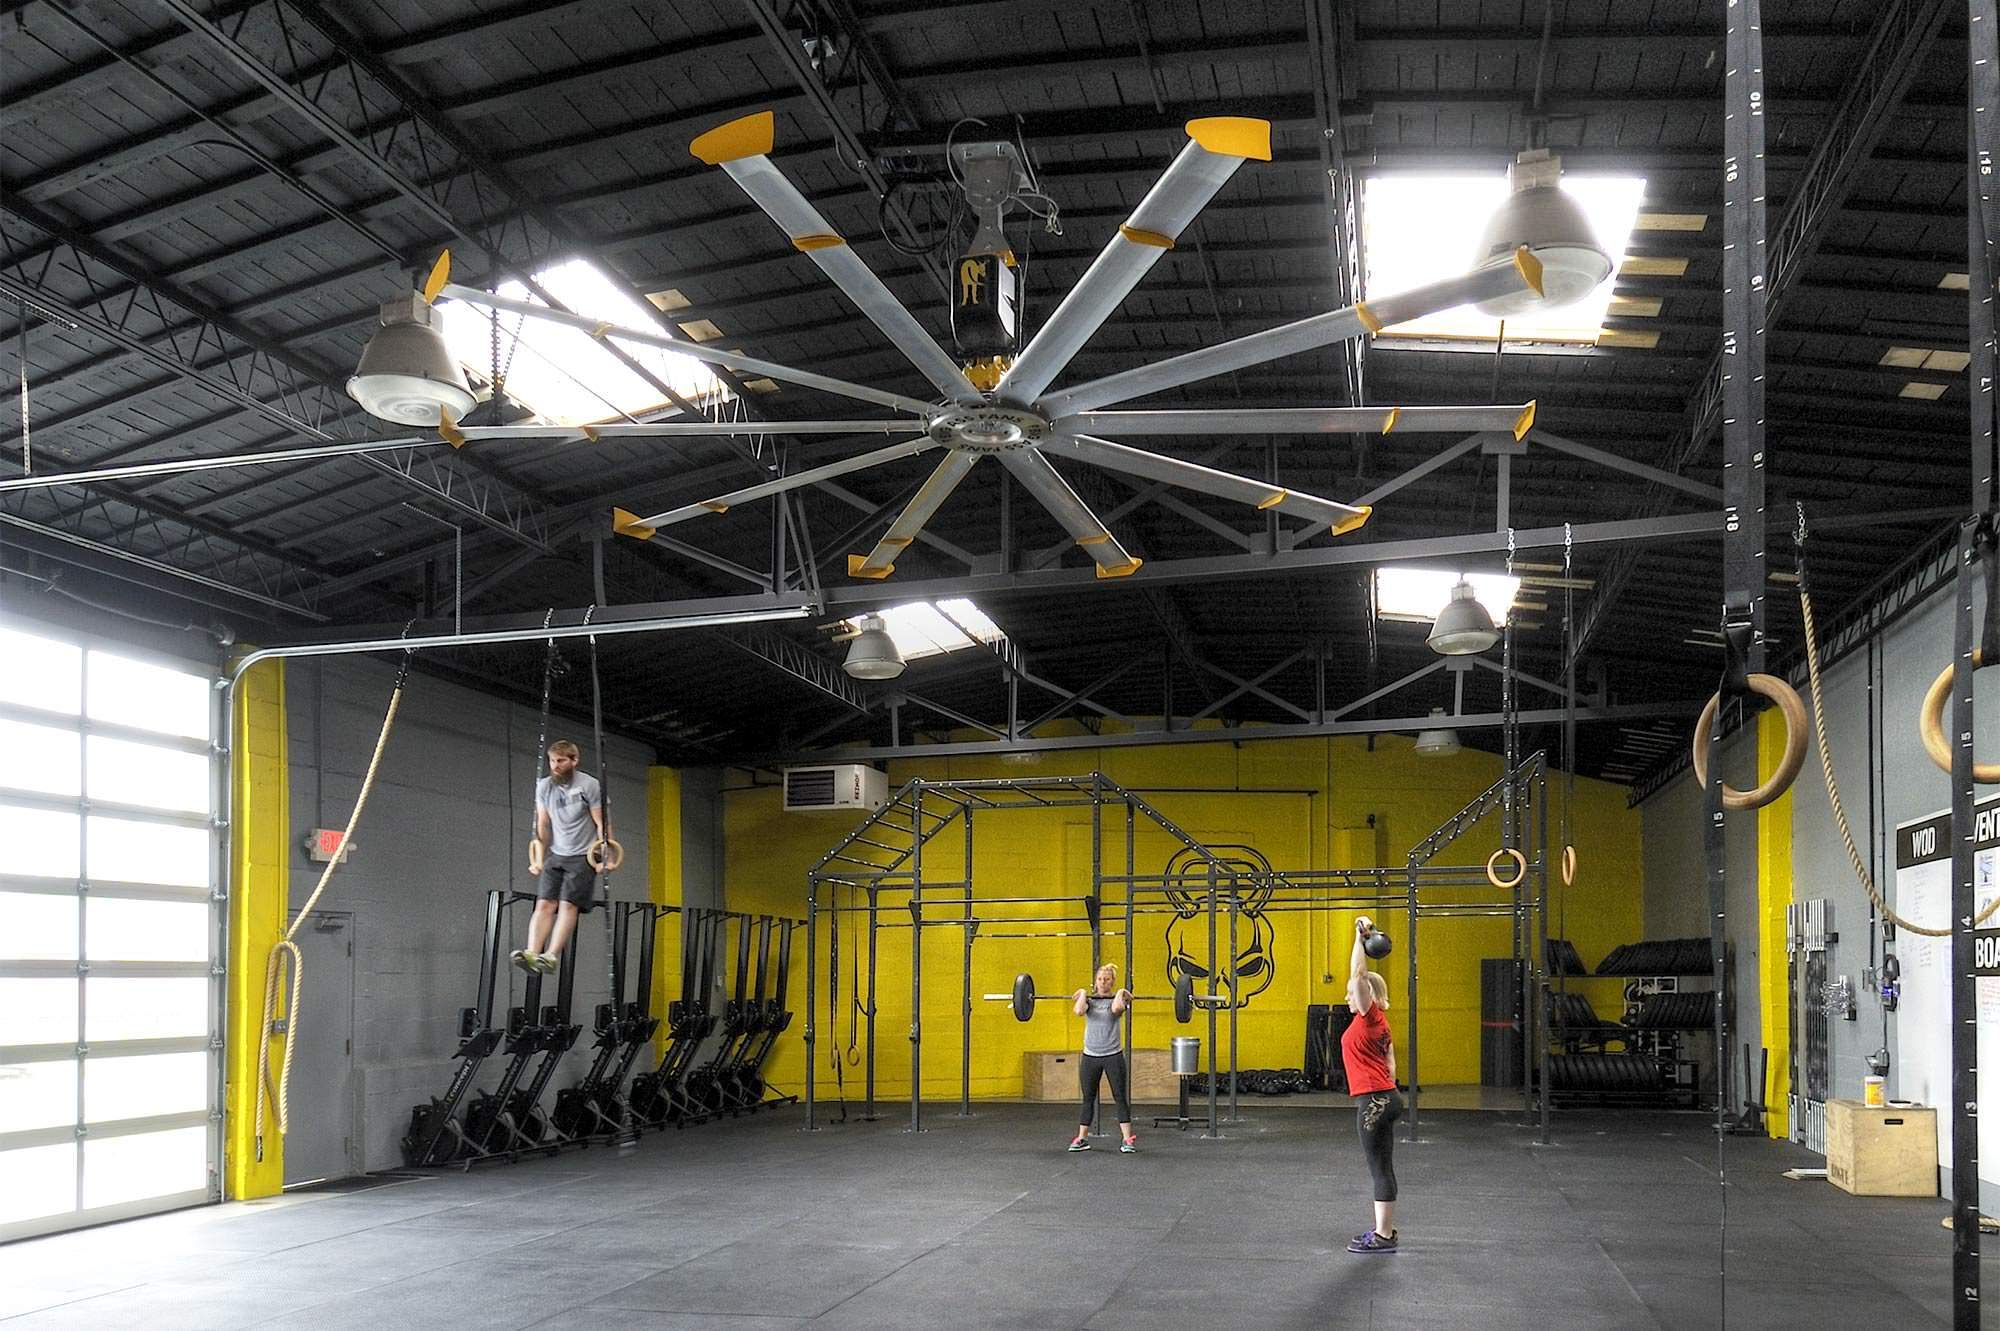 Gym Ceiling Fans Are Gym Essentials If They Are Big Ass Fans